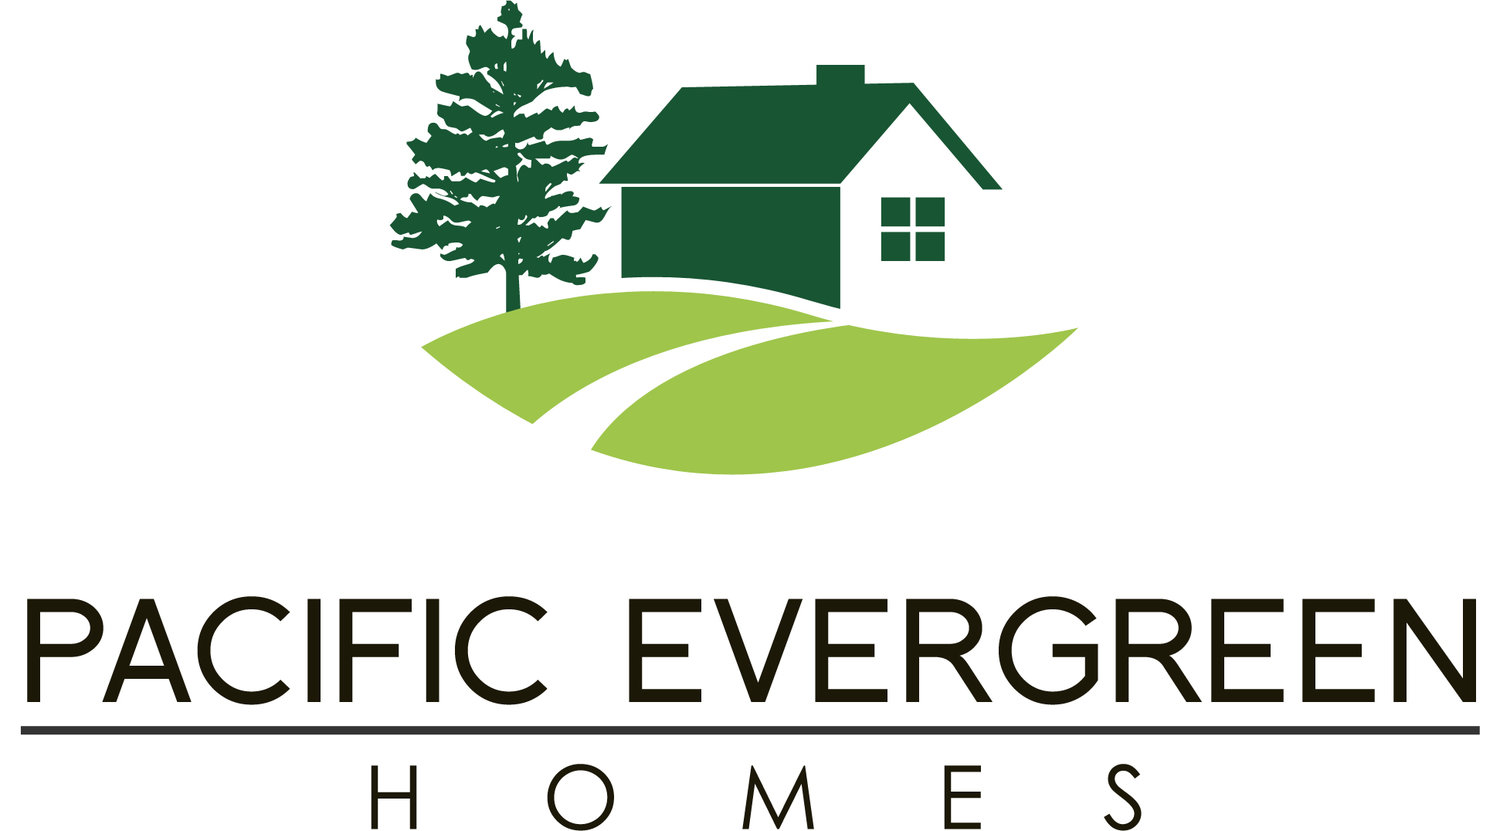 Pacific Evergreen Homes